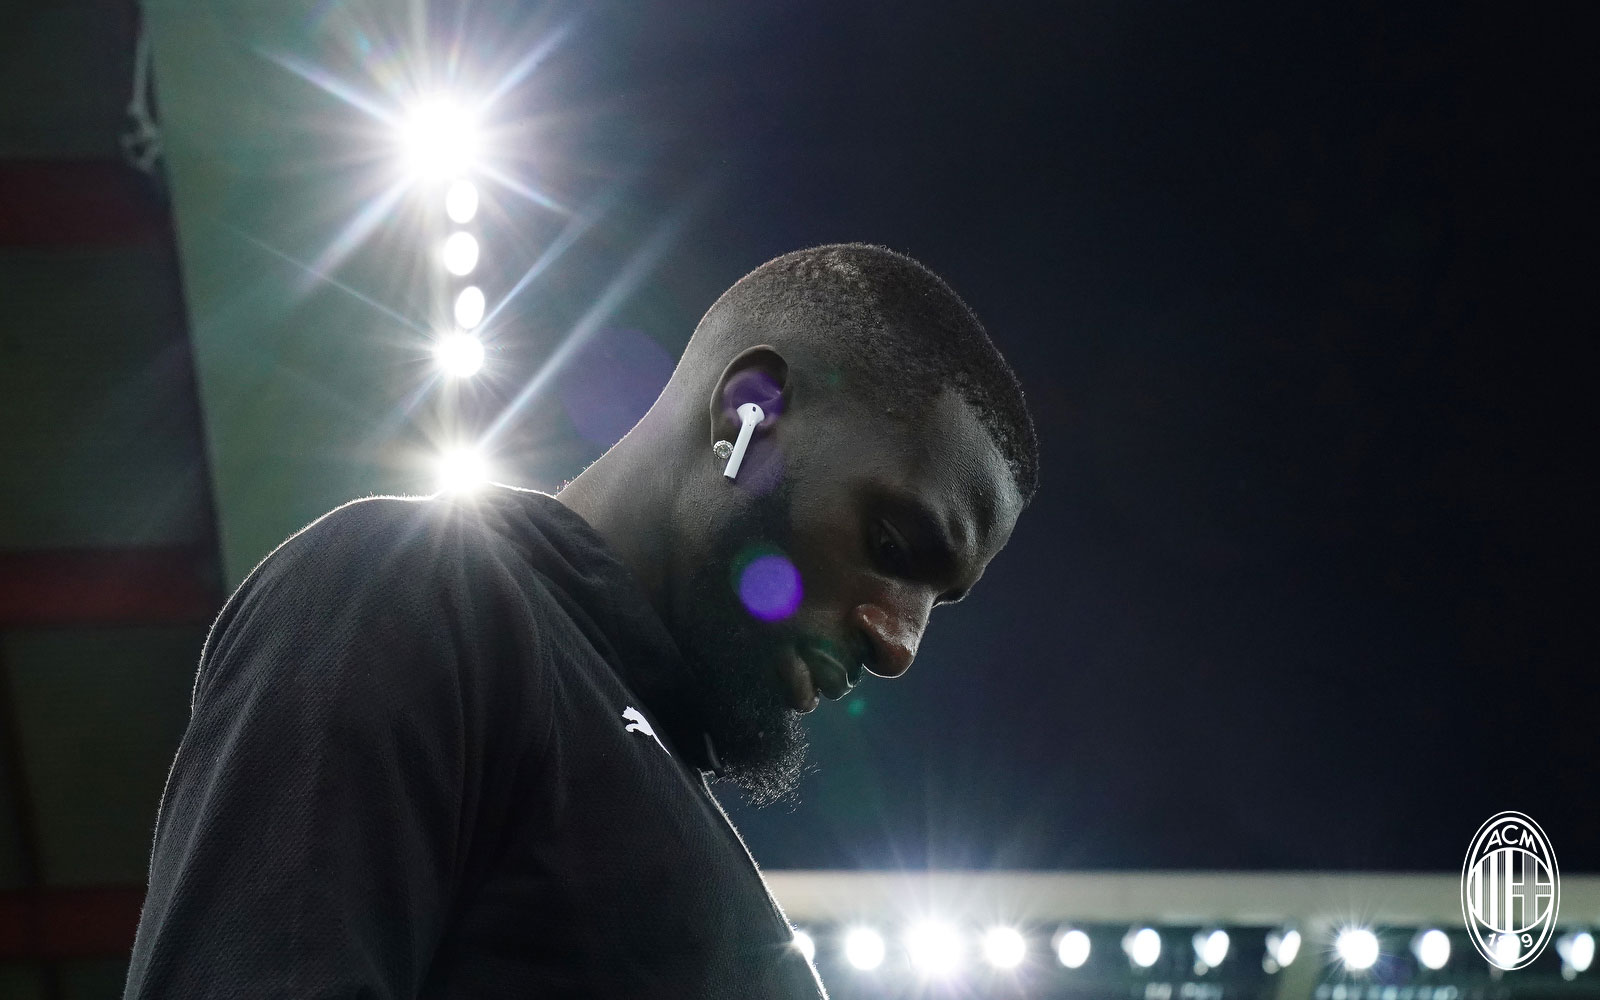 Tiémoué Bakayoko before Udinese-Milan at Stadio Friuli on November 4, 2018. (@acmilan.com)